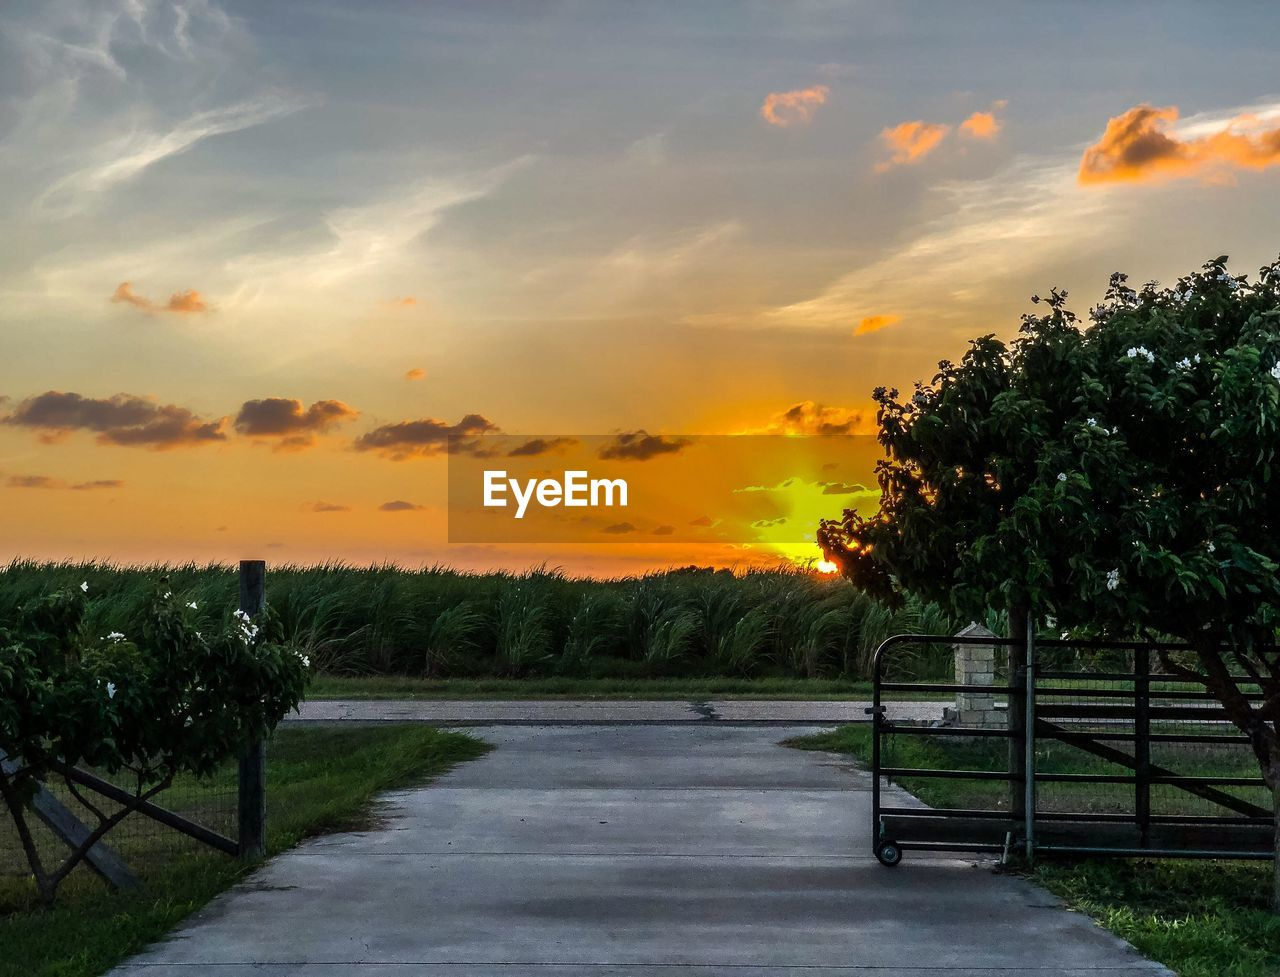 sky, sunset, cloud - sky, plant, tree, beauty in nature, orange color, nature, tranquility, scenics - nature, no people, tranquil scene, road, transportation, growth, the way forward, direction, land, field, outdoors